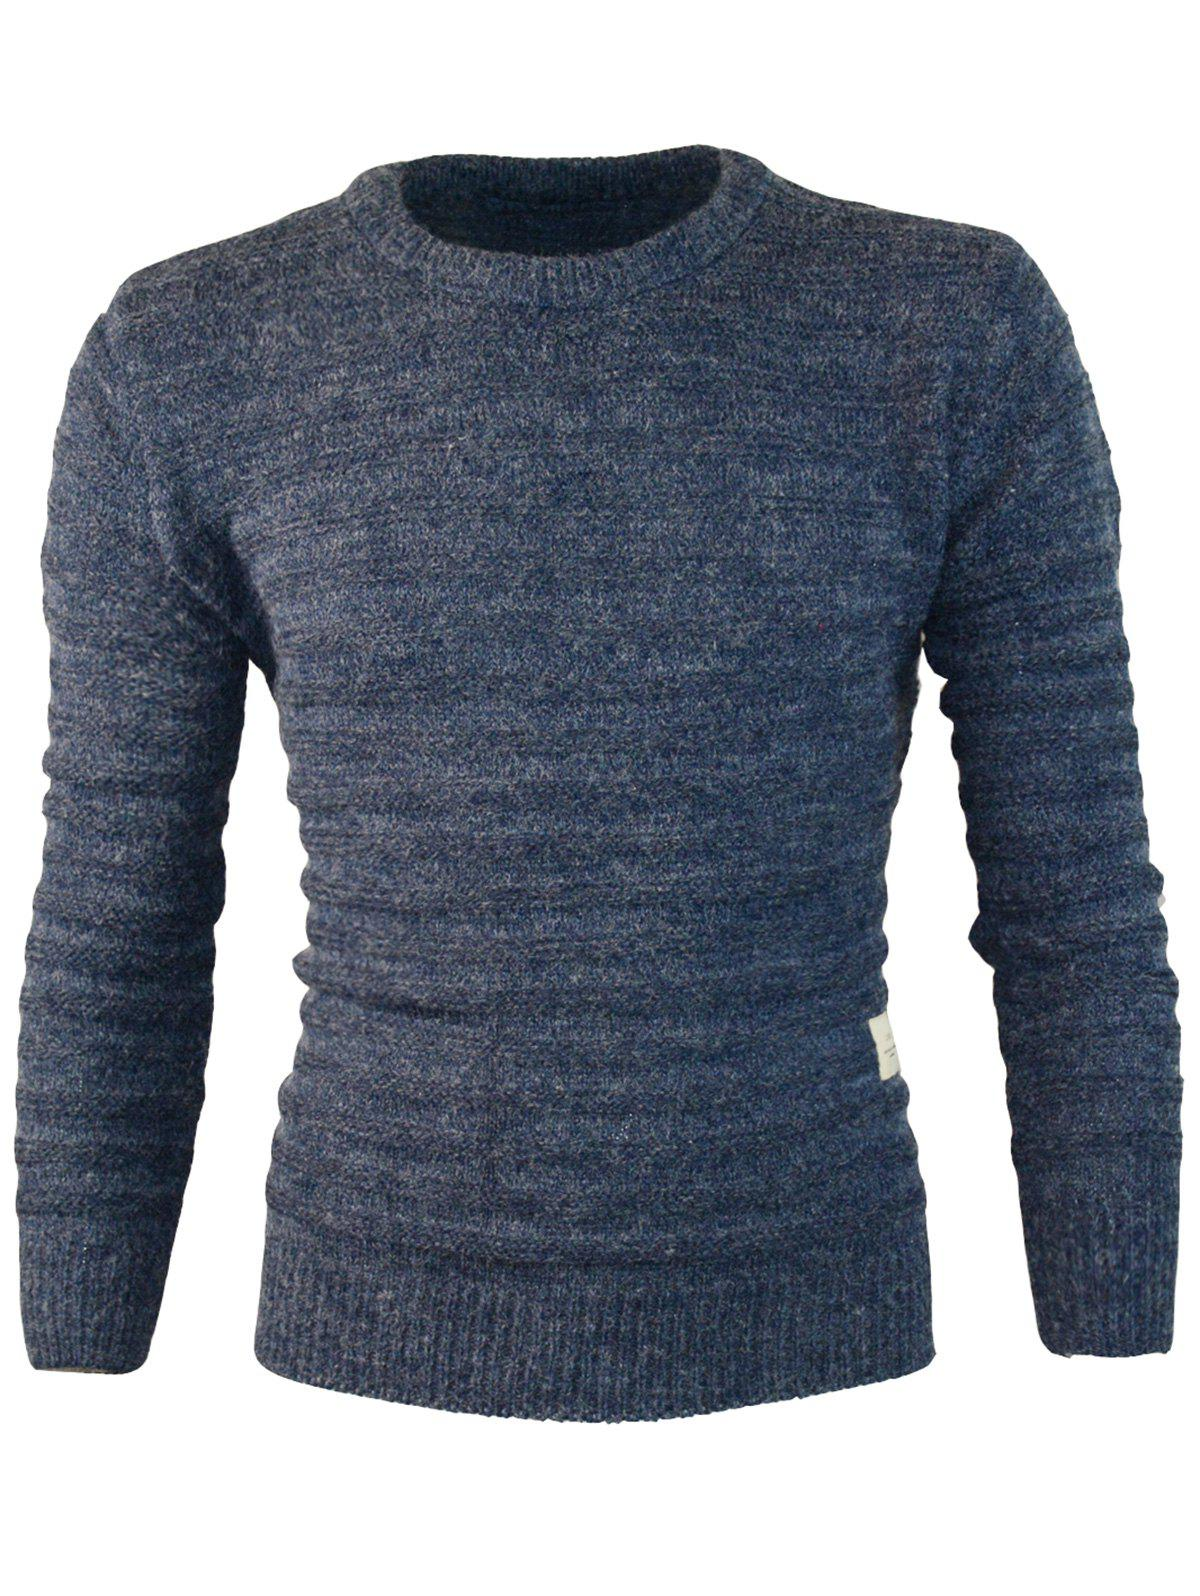 Fancy Patch Design Crew Neck Jumper Sweater